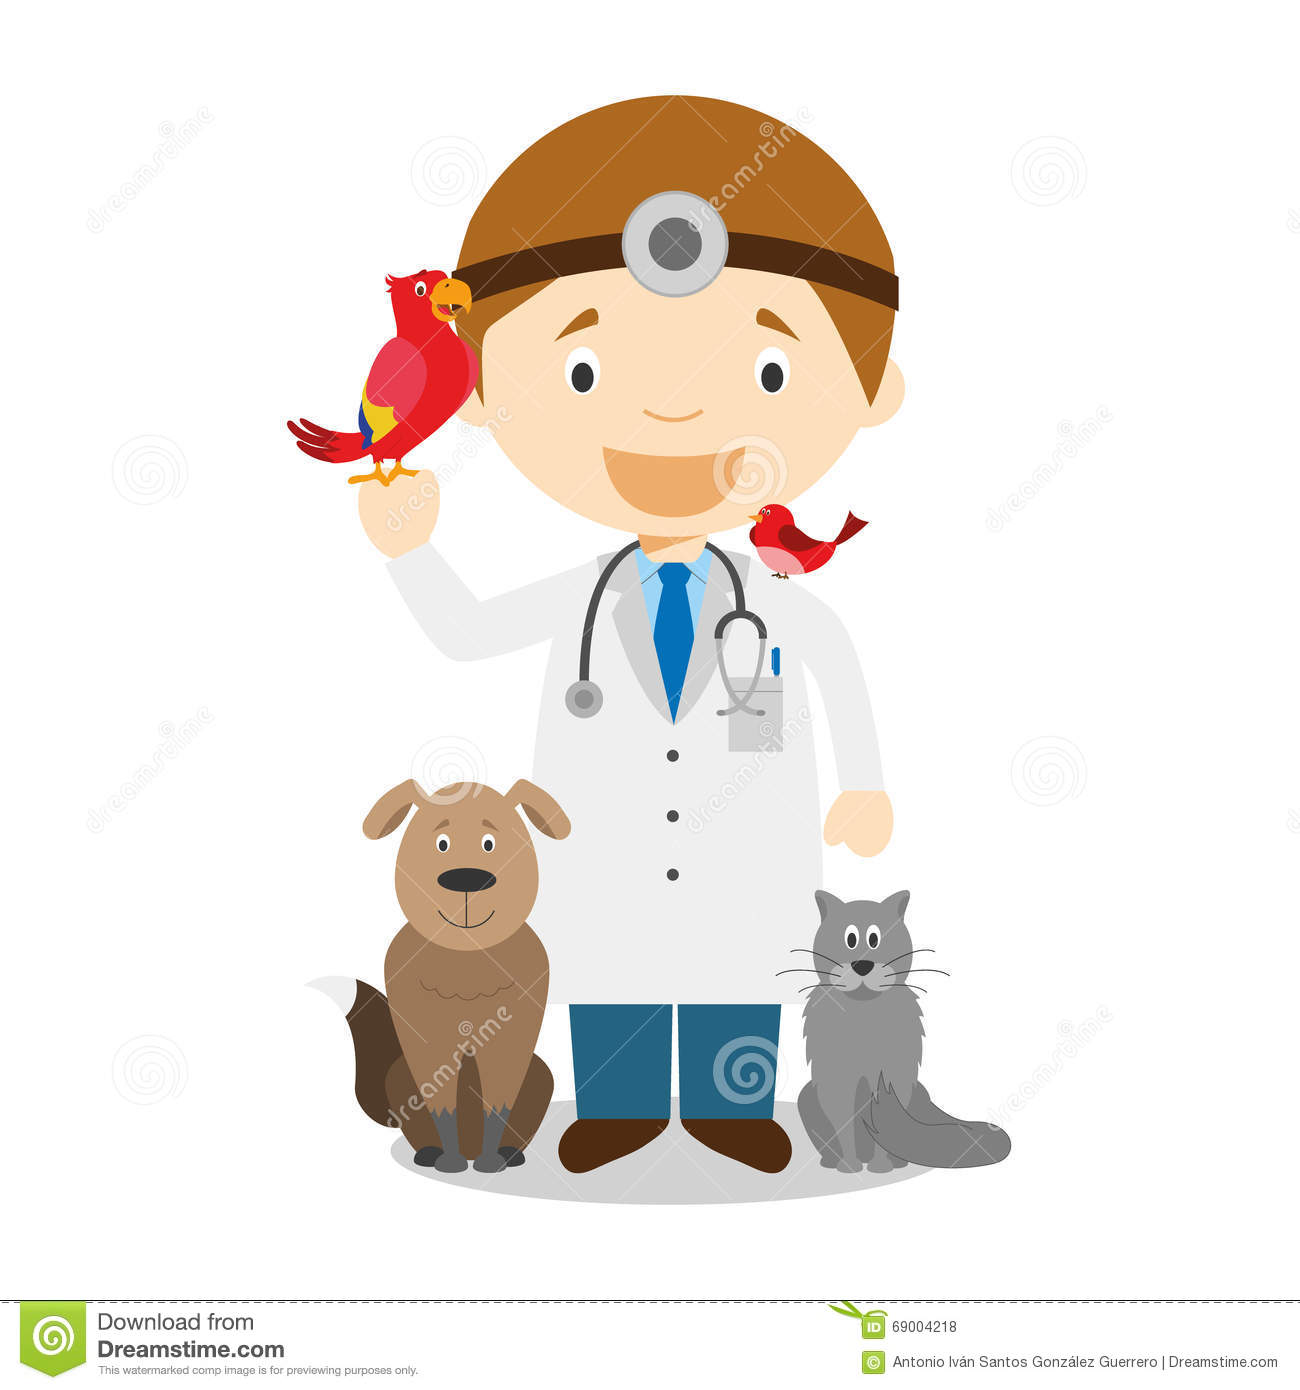 veterinar kid Cute cartoon vector illustration of a veterinarian Royalty Free Stock Photos